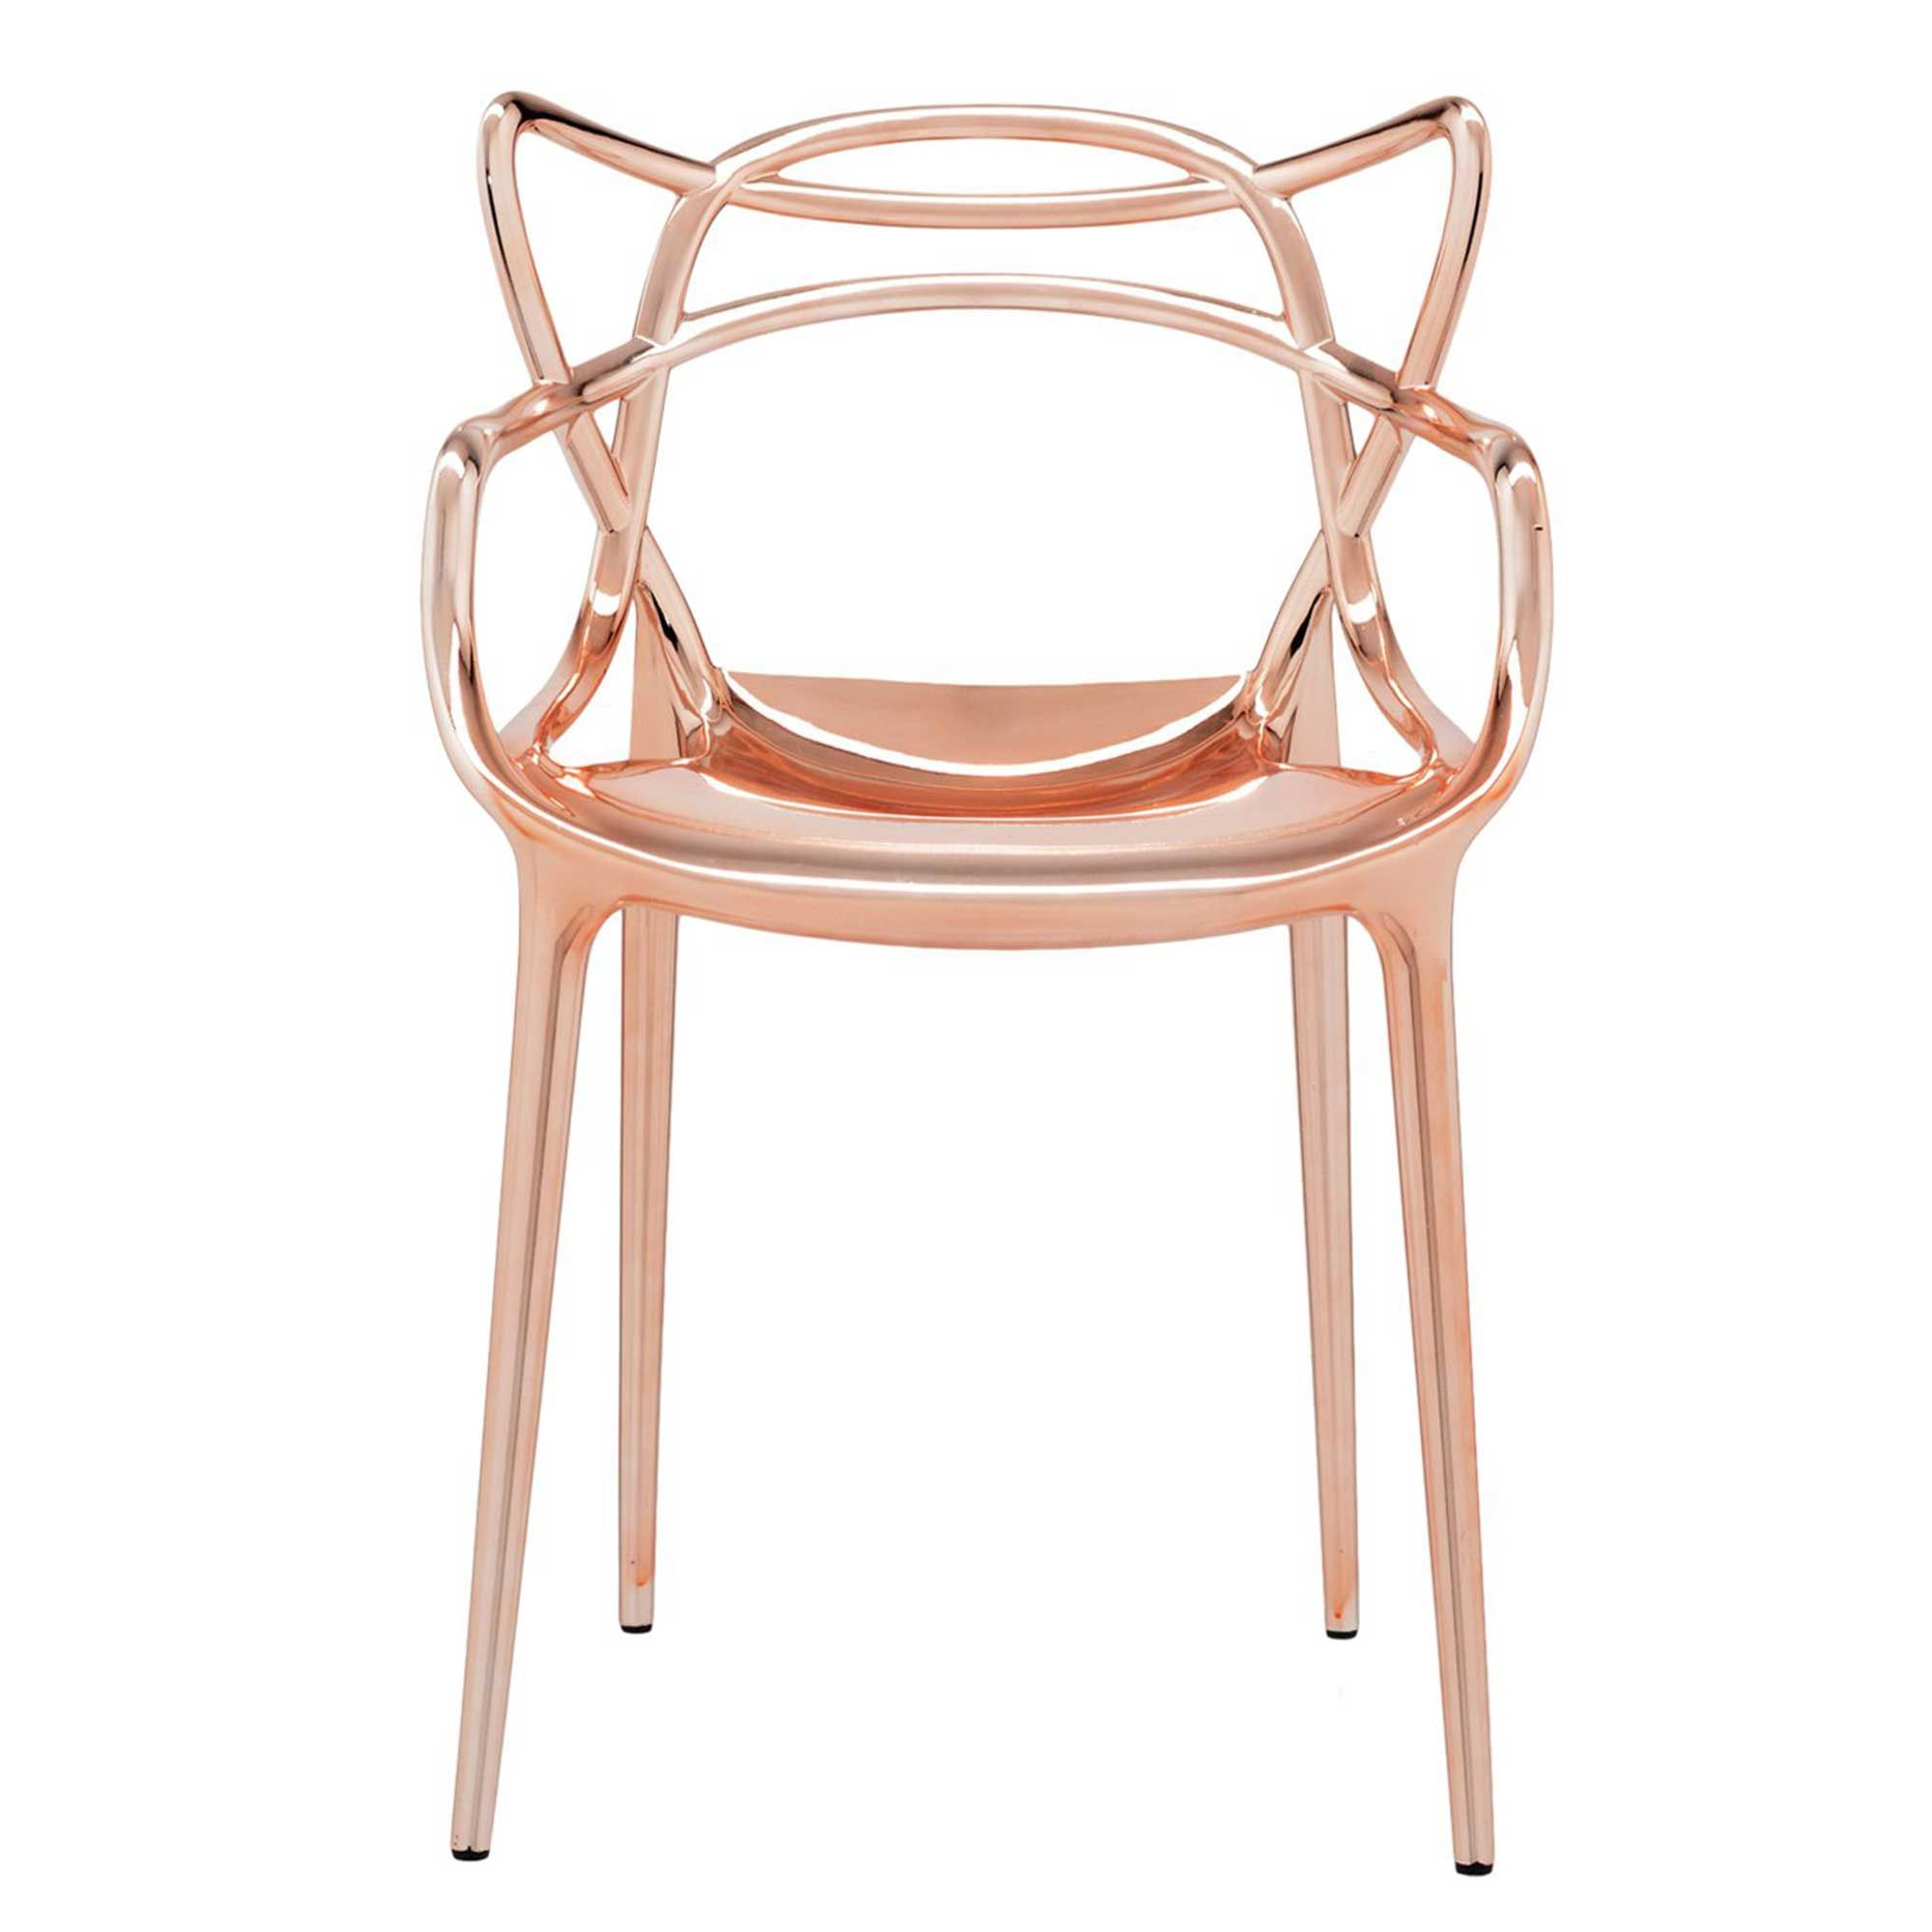 this gorgeous copper chair will look great in a contemporary home